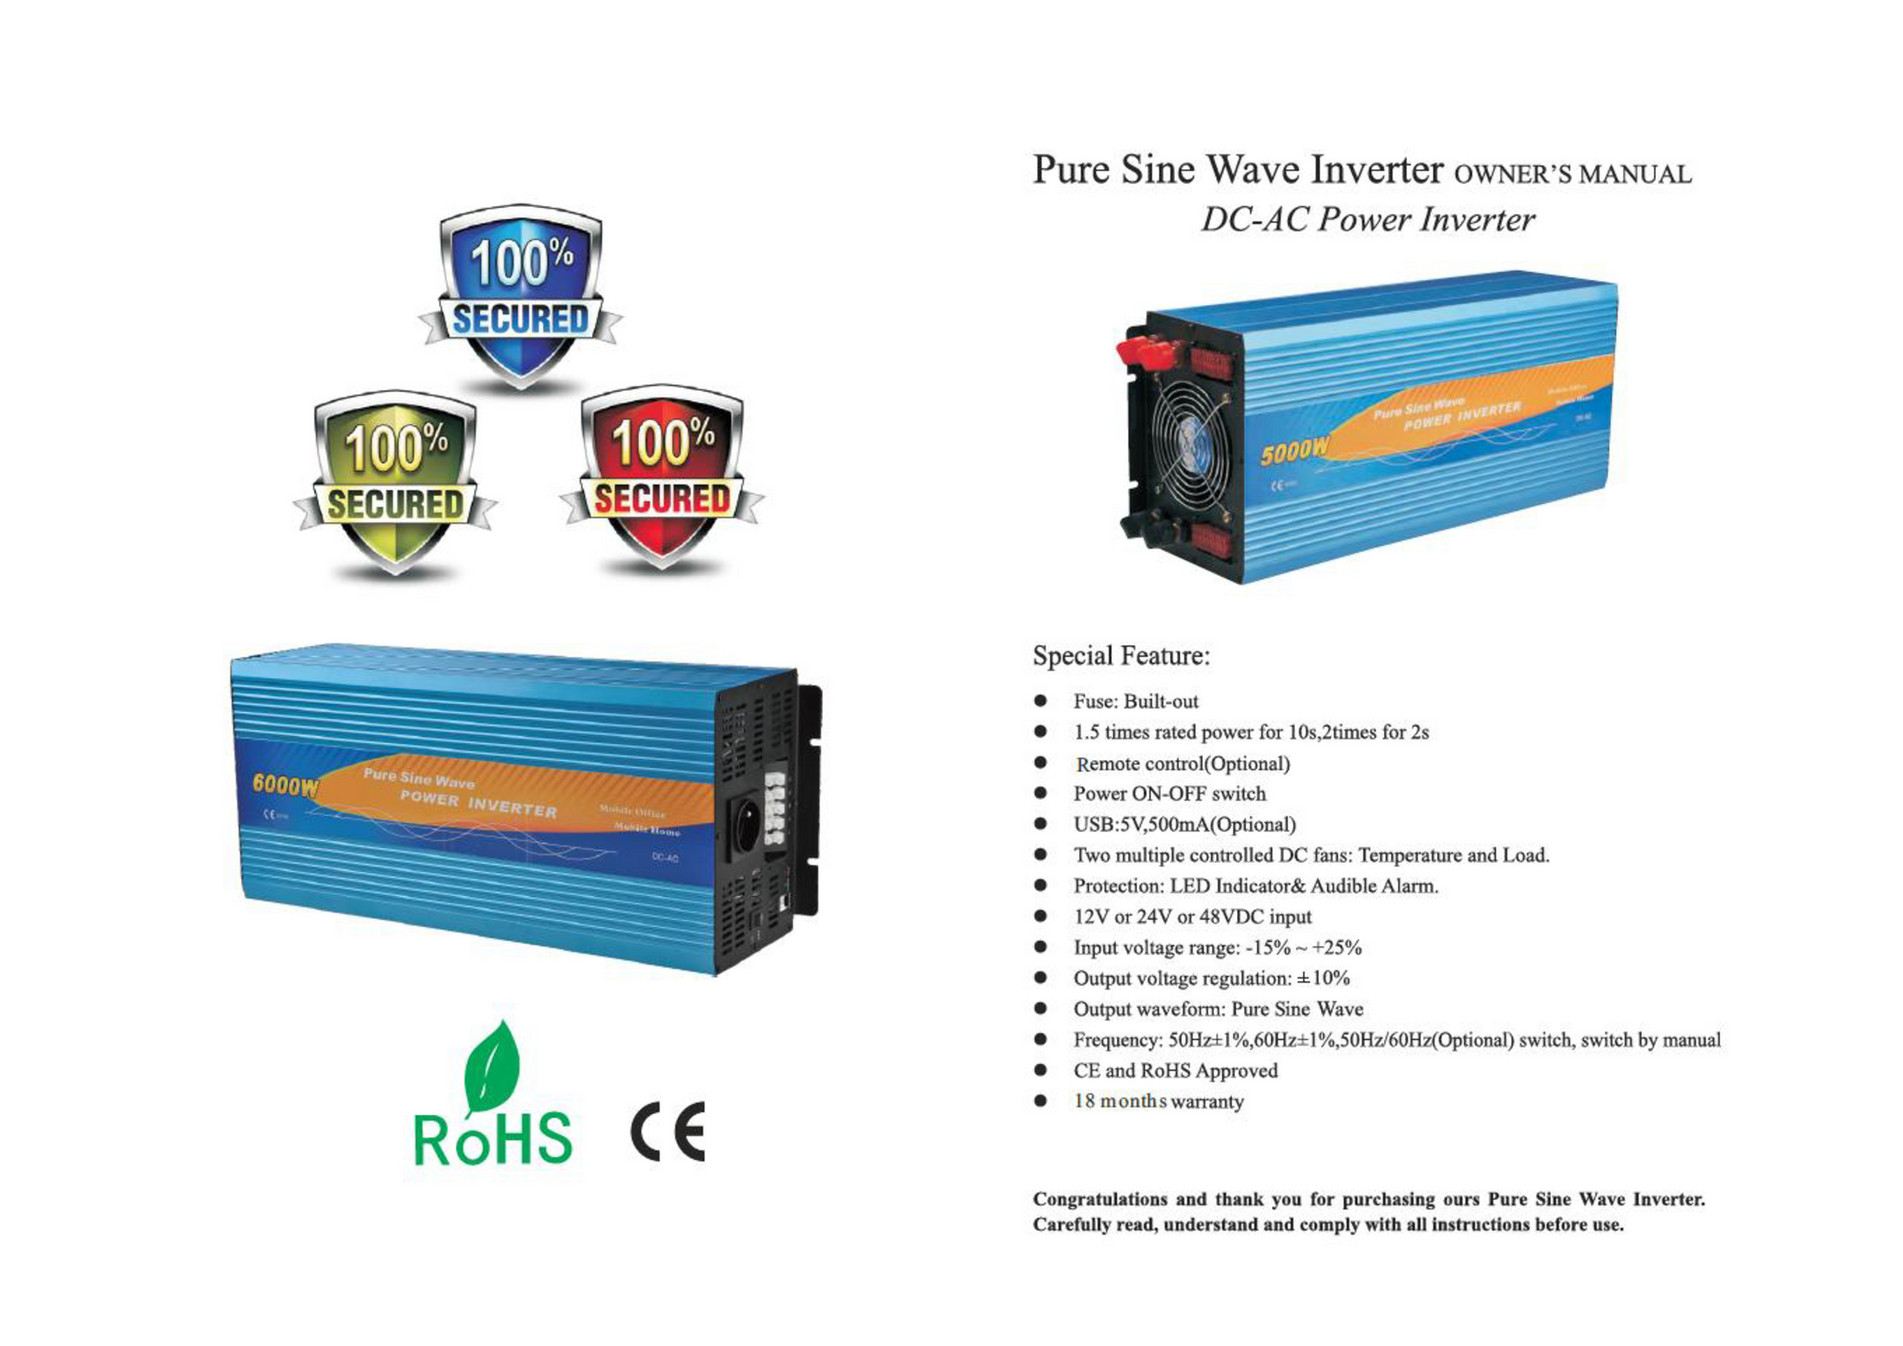 Solar Camping Australia Pure Sine Wave Inverter Manual Page 1 Led Indicator For Remote Ac Loads Created With Publitascom